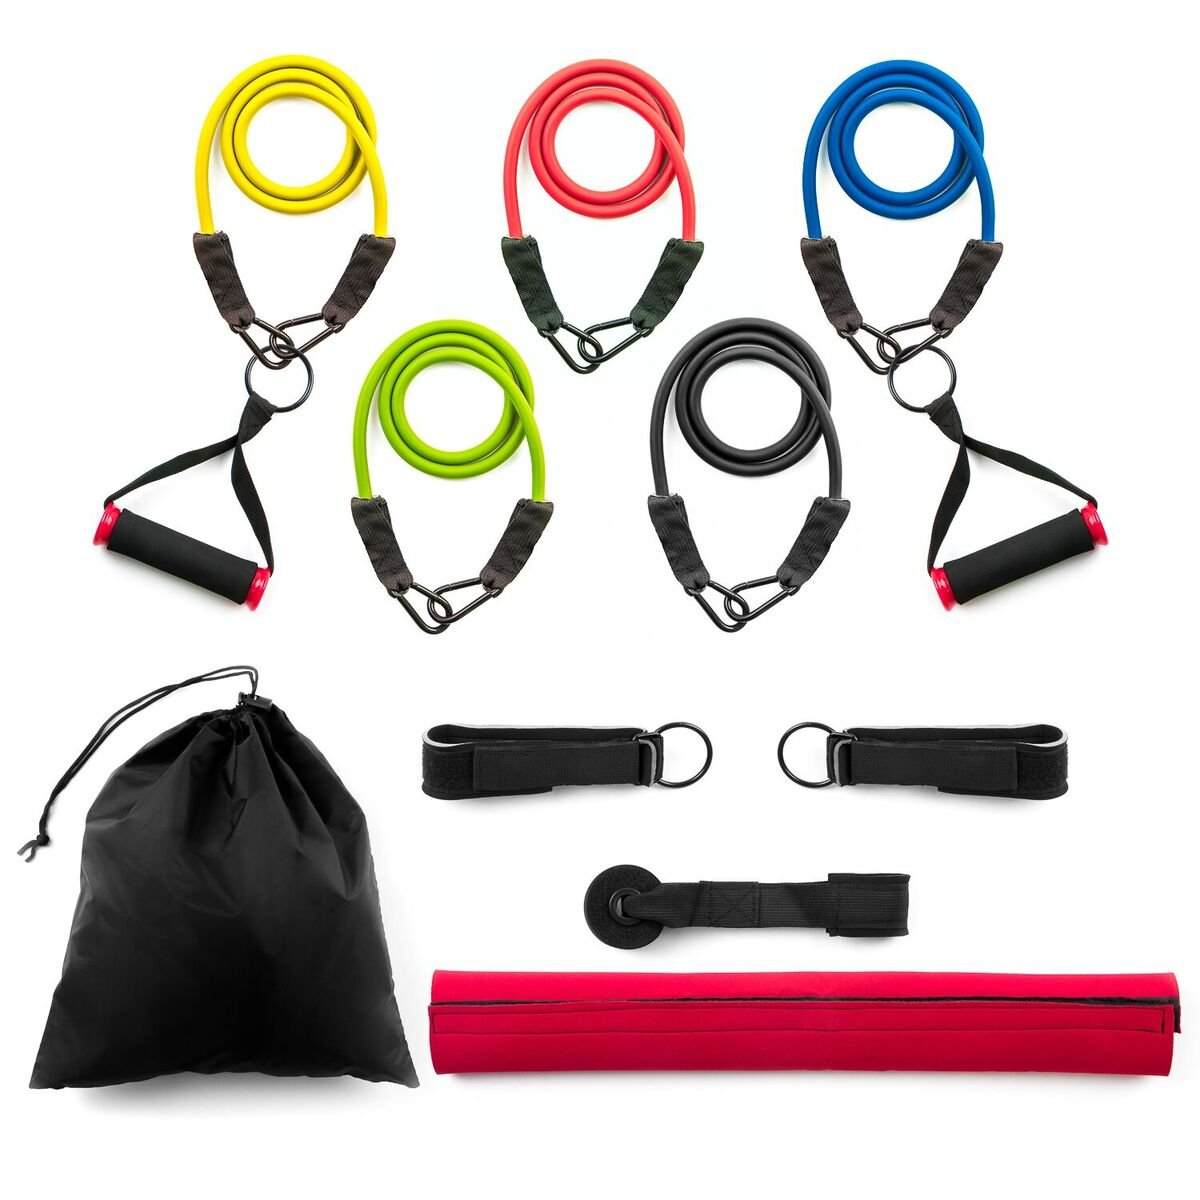 Home Treats 13pc Strong Exercise Resistance Bands Set with Handles, Fitness Stretch Bands With Door Anchor,Ankle Straps,Carry Case And Handles For Gym Workout 5241020707776